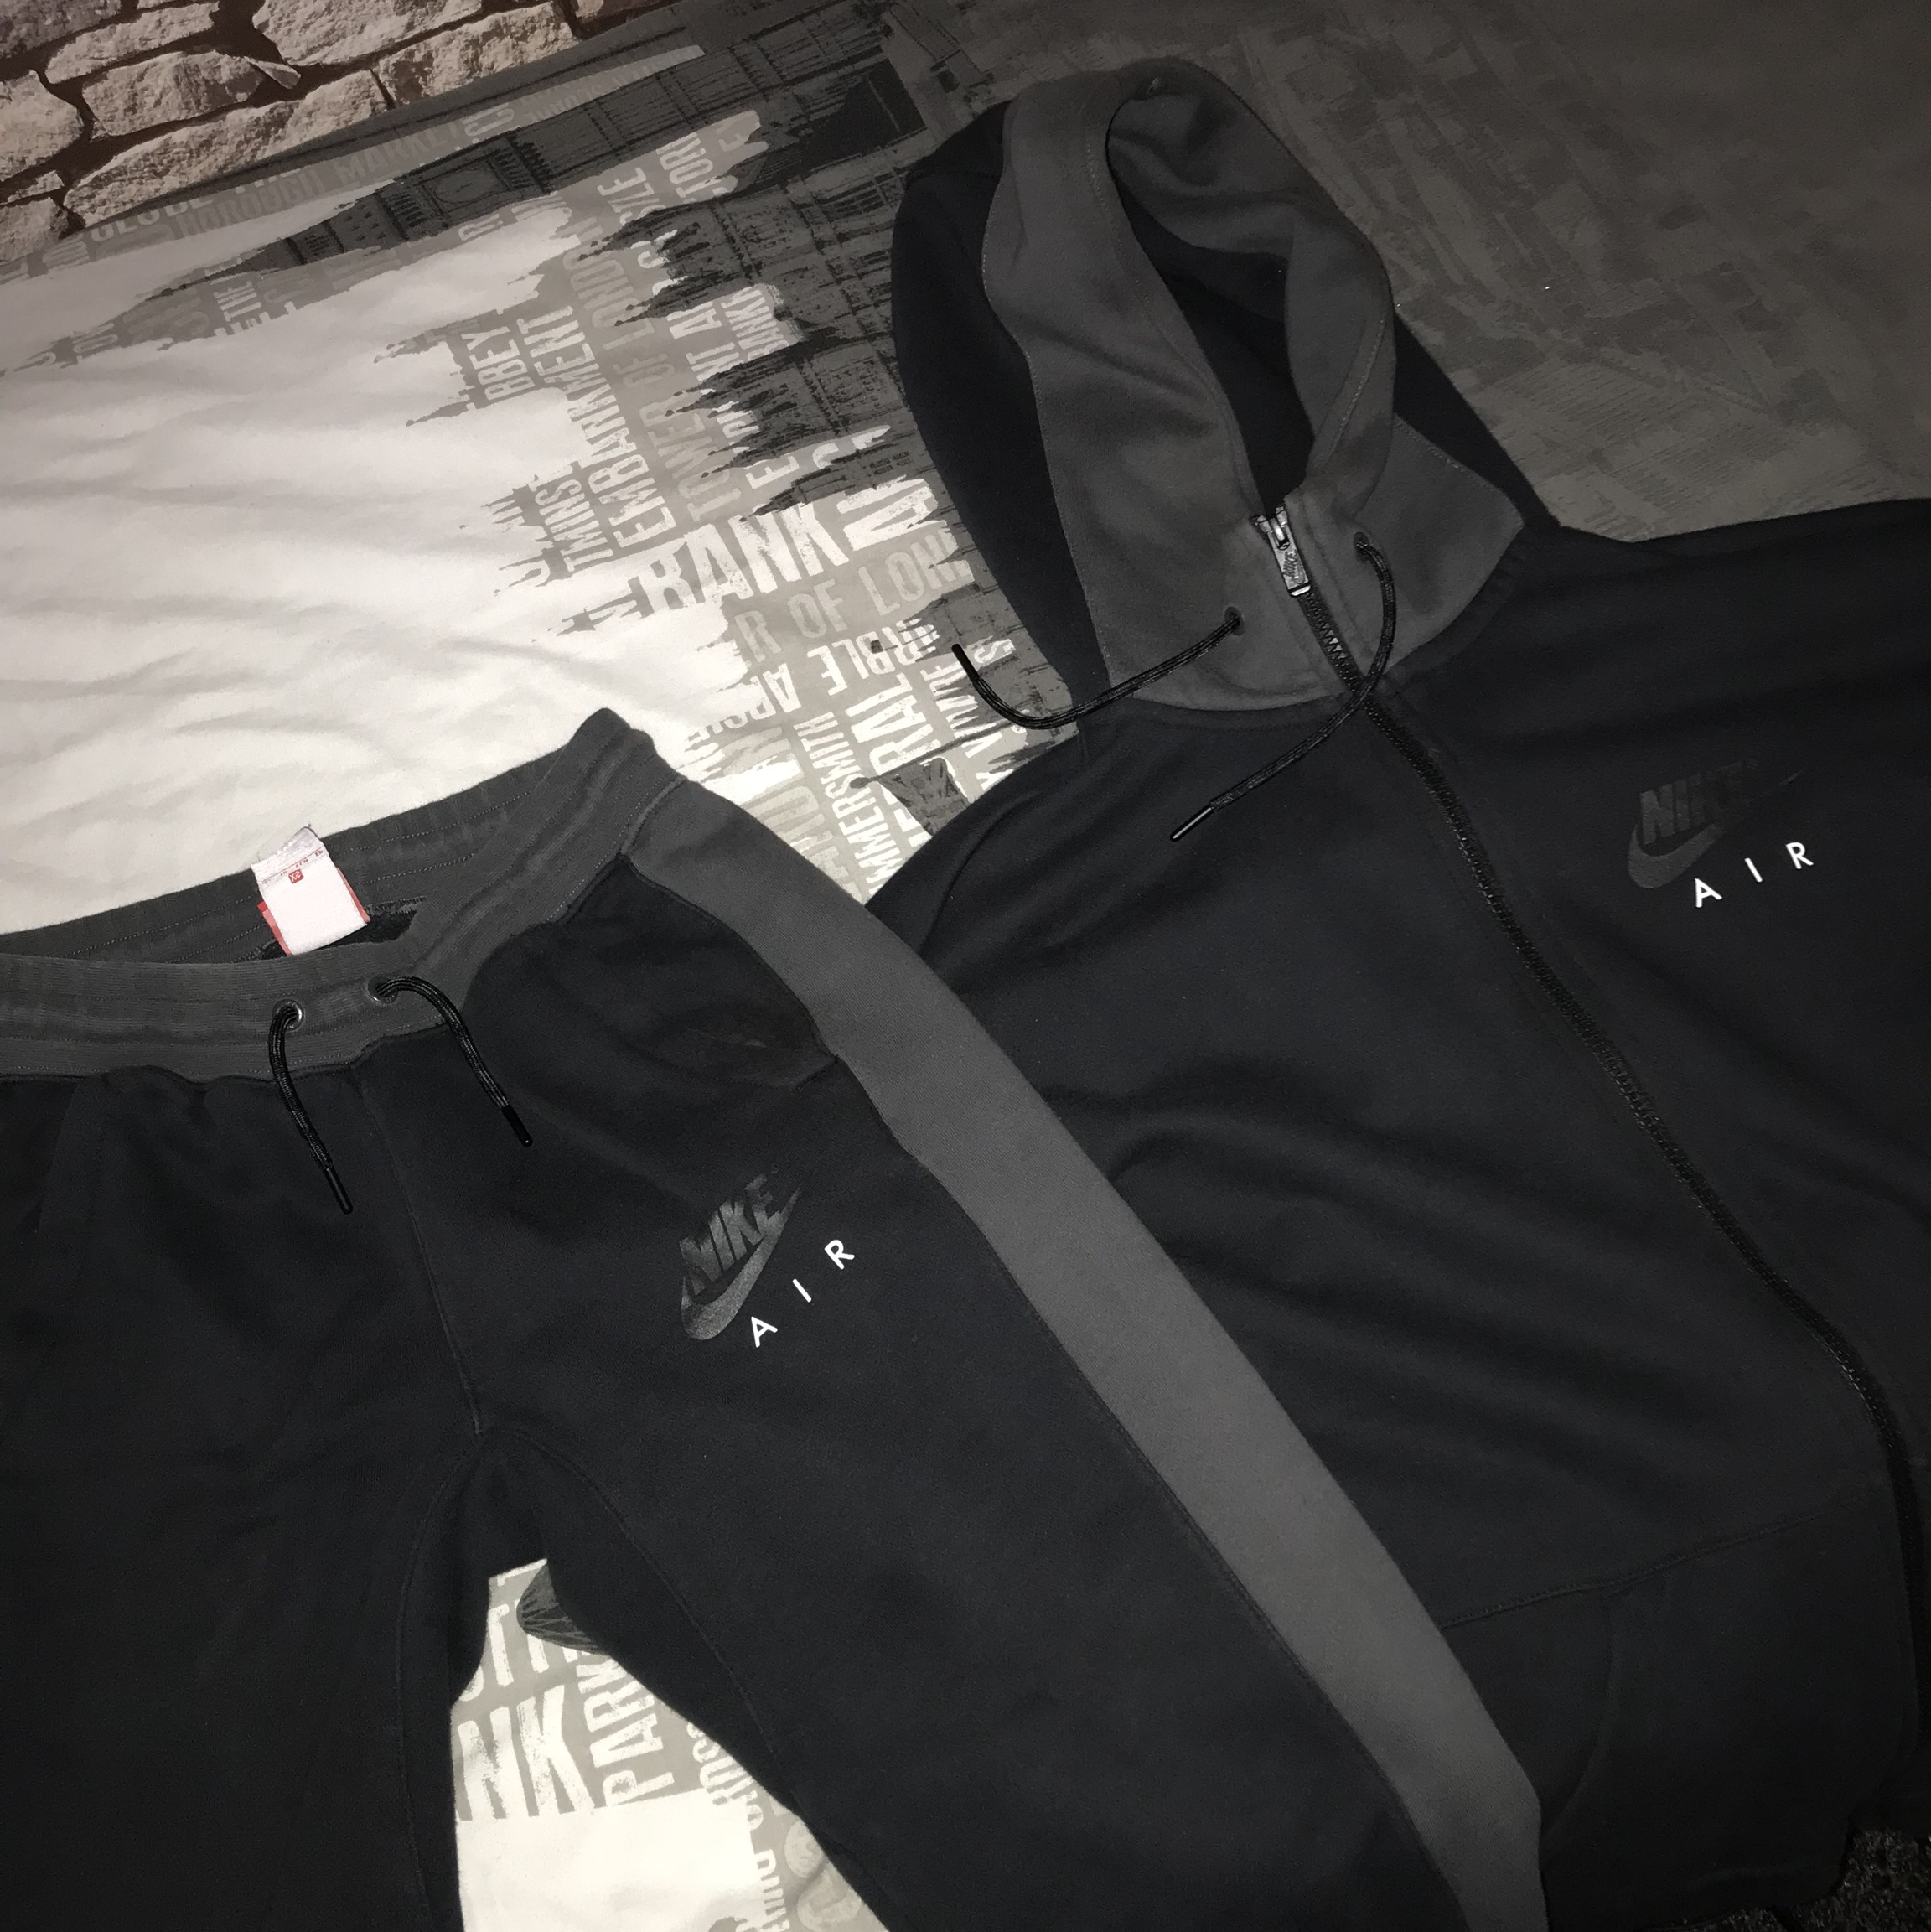 grey Nike Air tracksuit